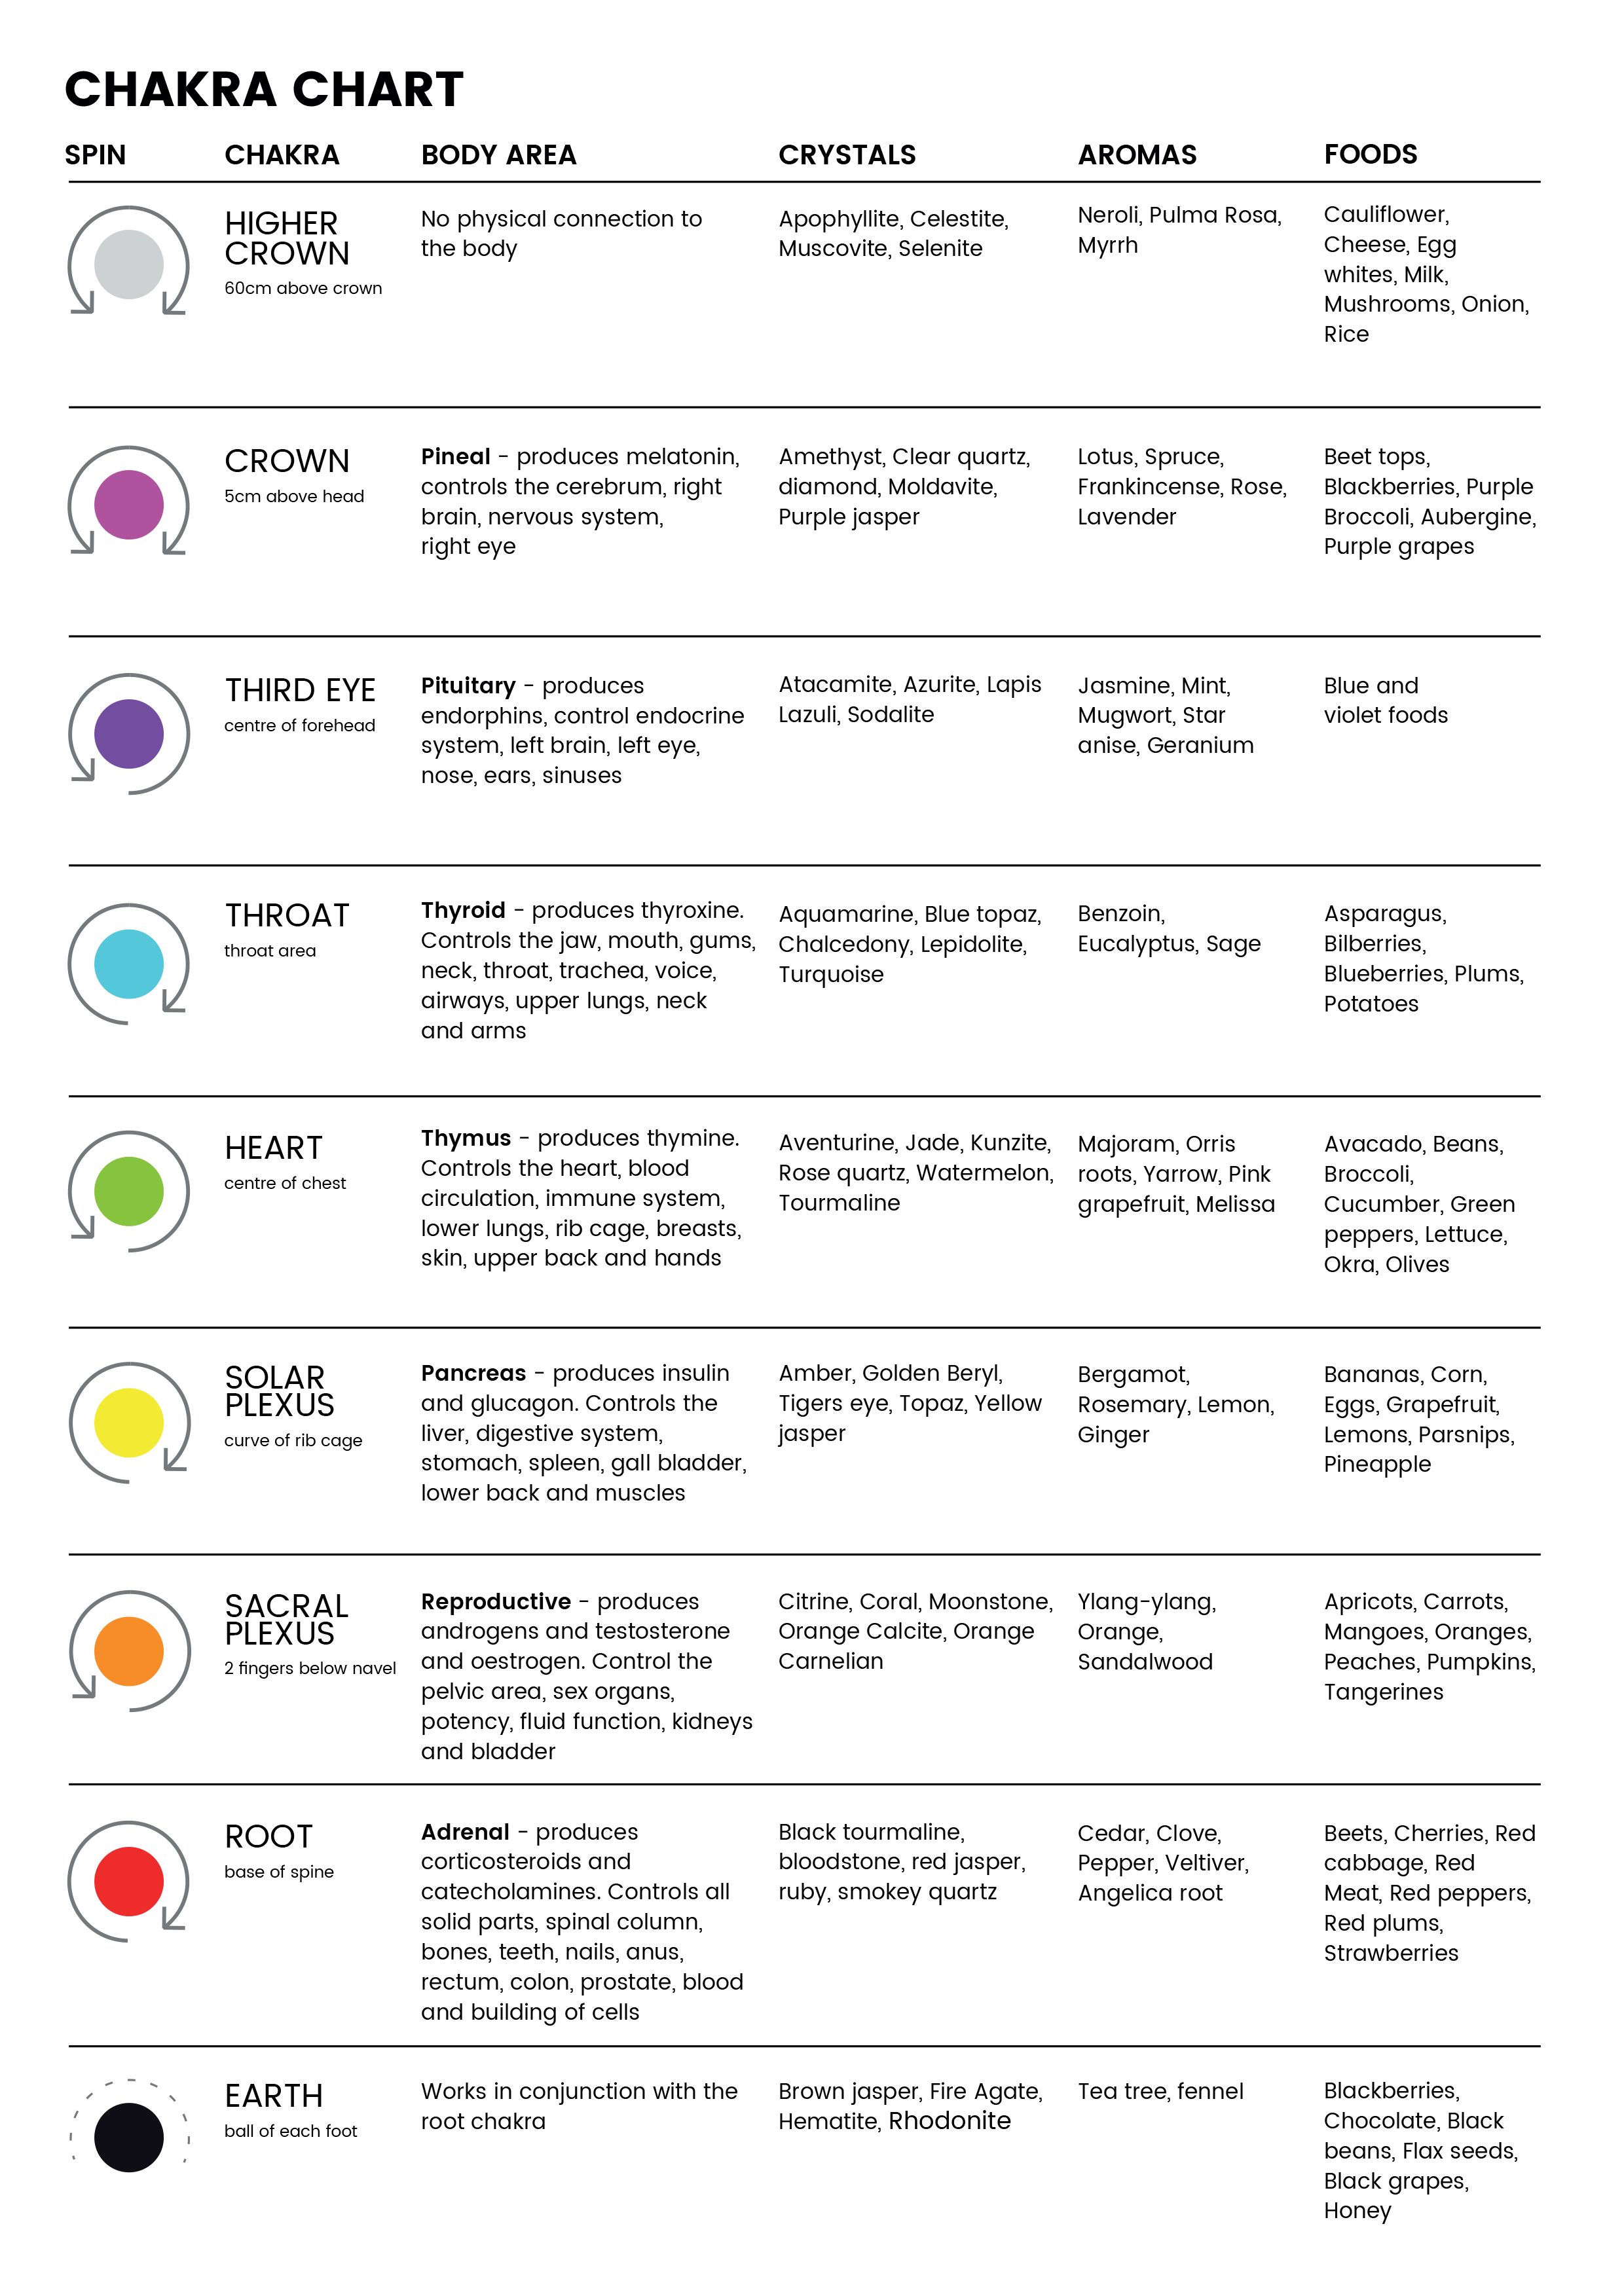 Chakra Chart Used To Work Out If A Chakra Is Spinning The Correct Way Together With